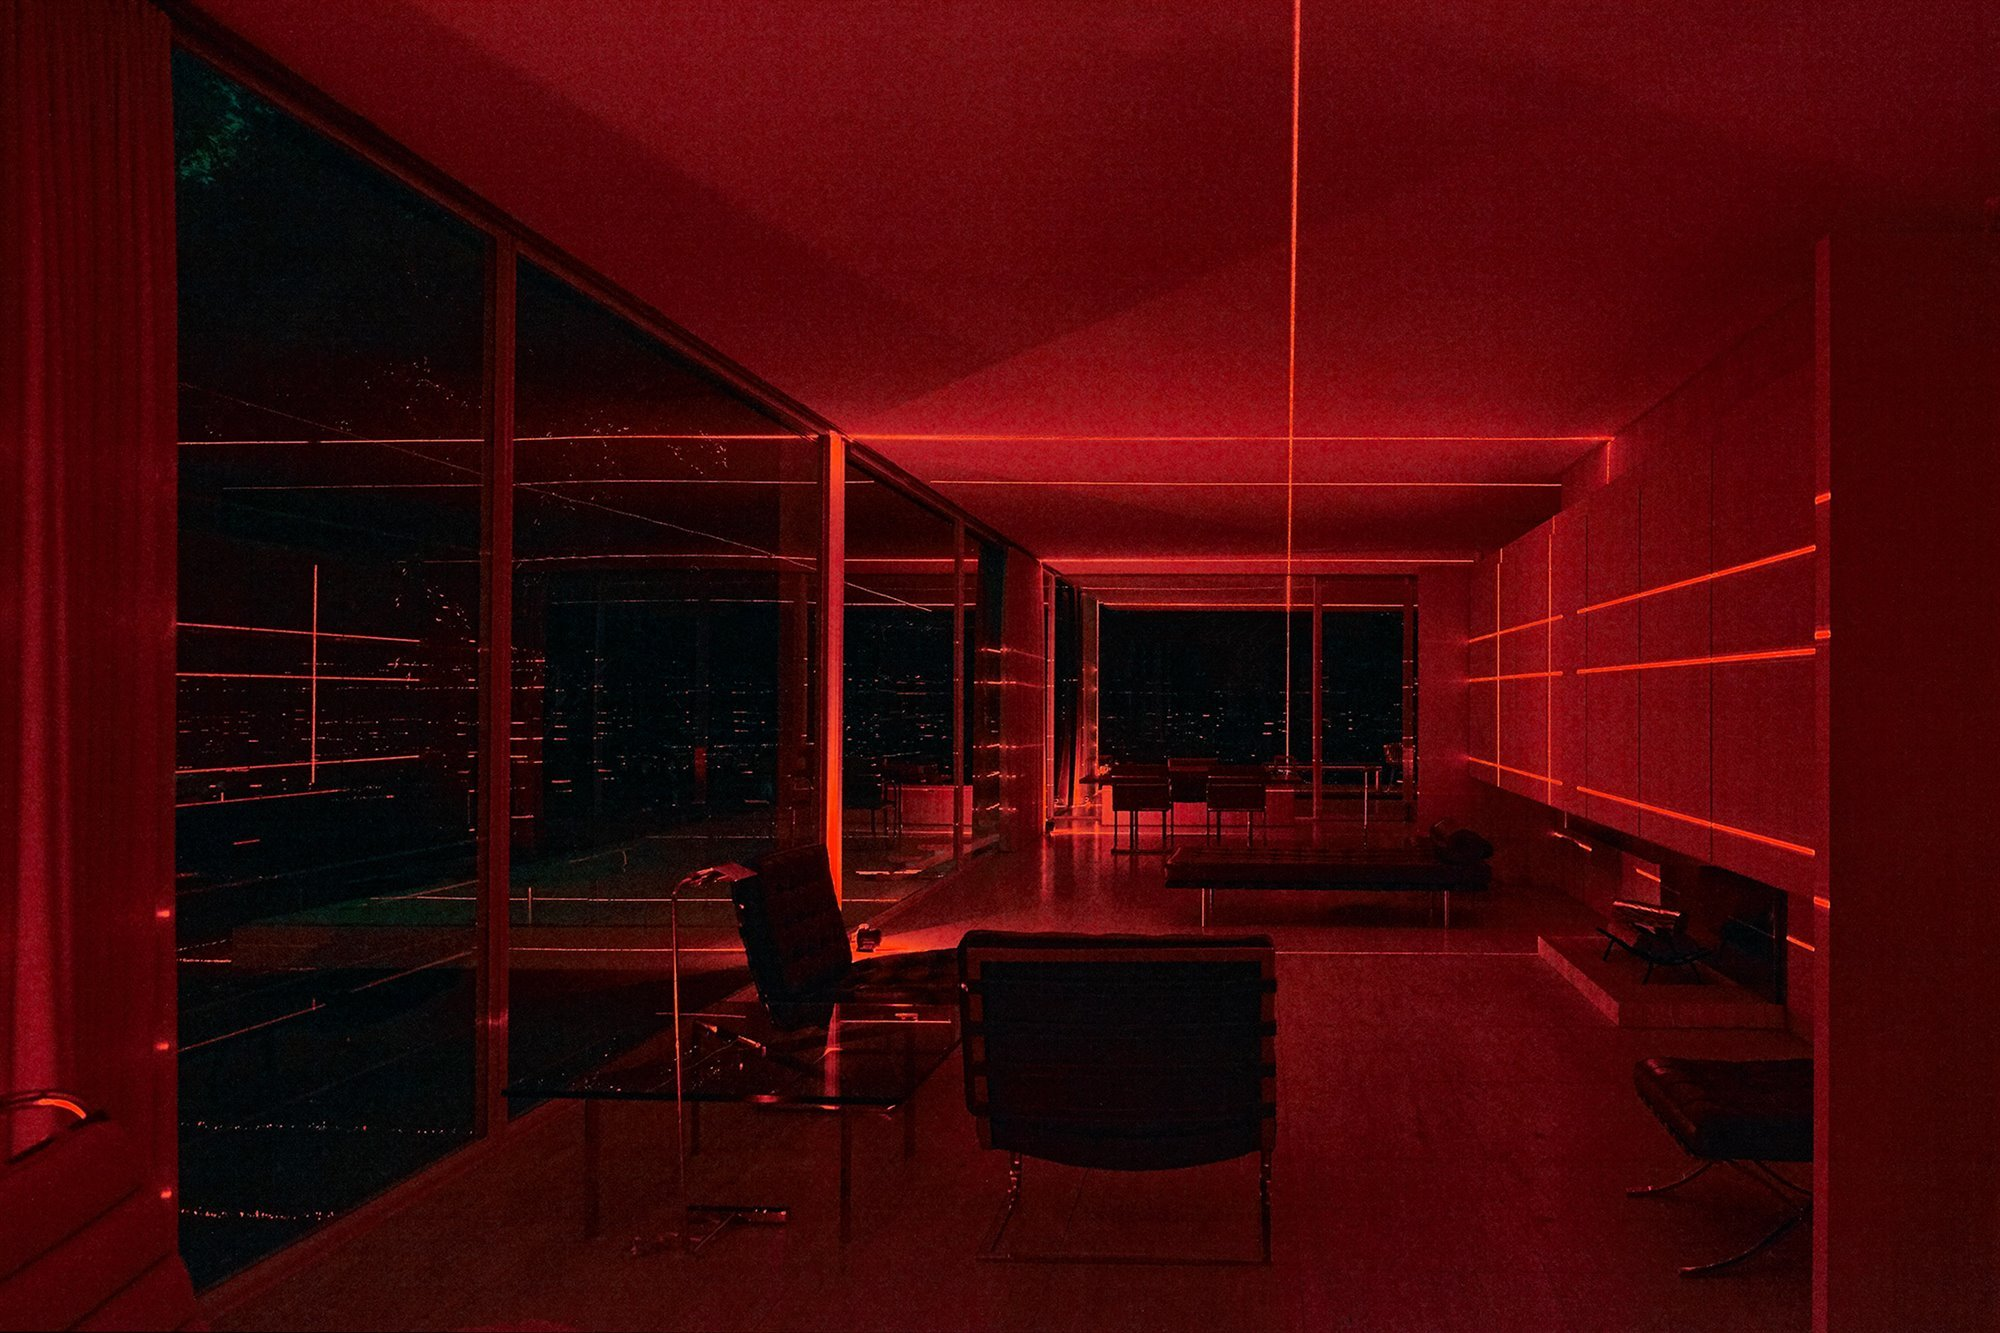 mies-van-der-rohe-farnsworth-house-iker-gil-luftwerk-geometry-of-light-red-laser